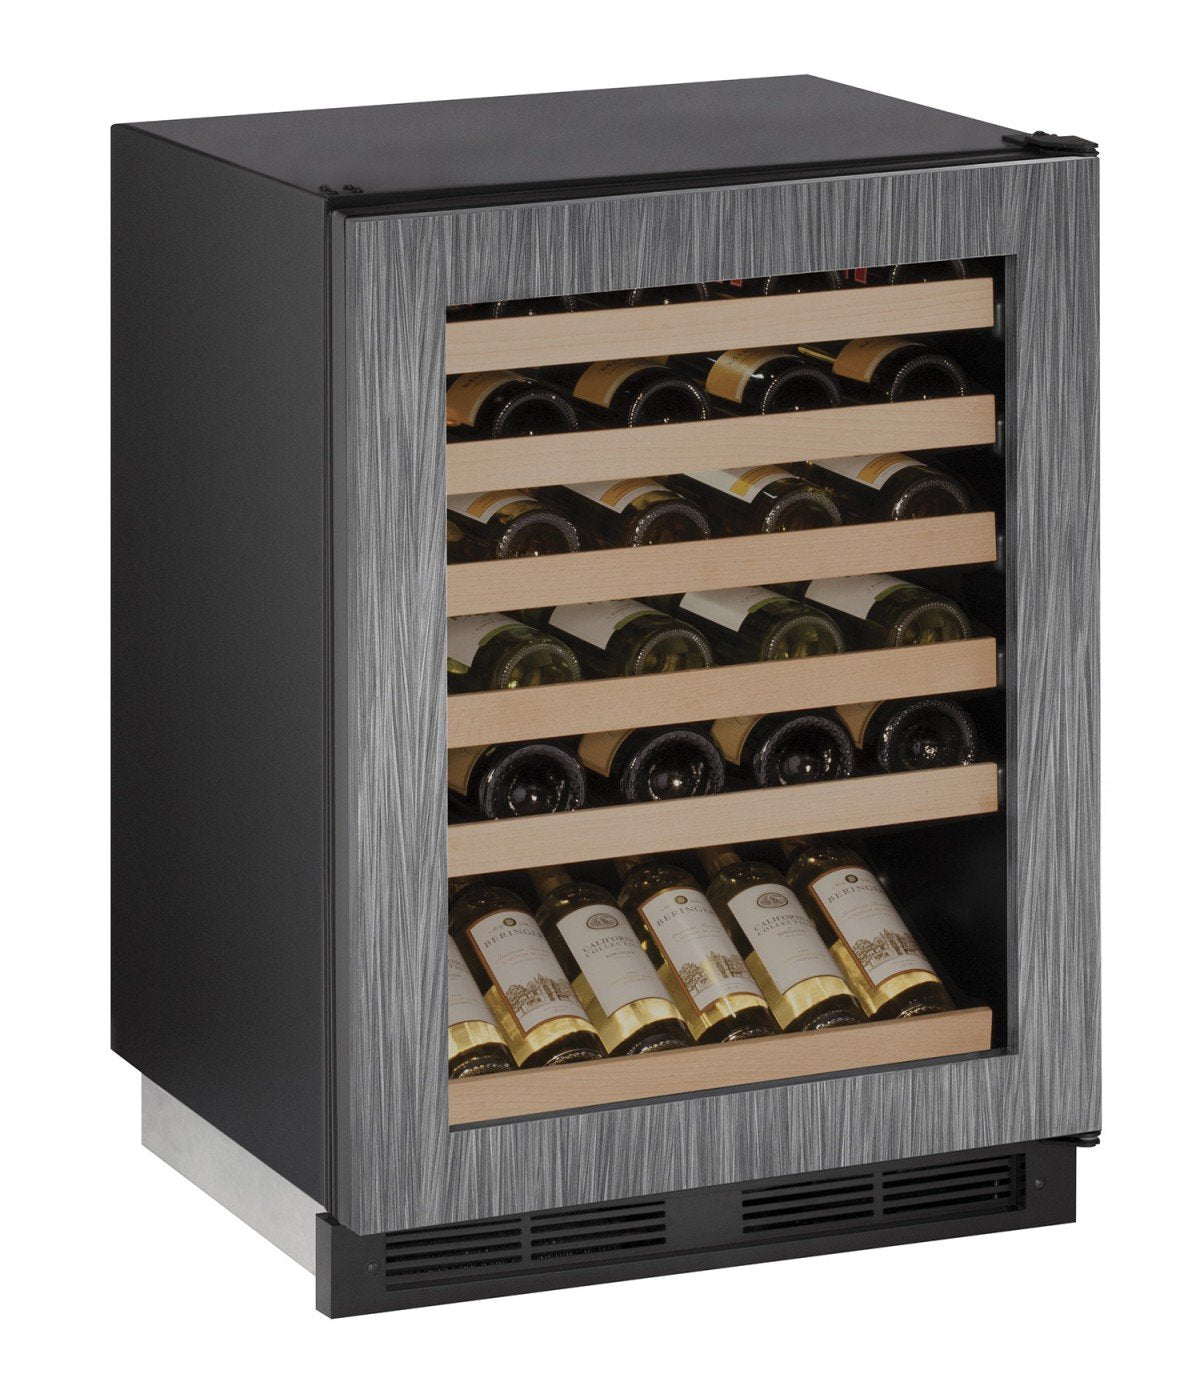 "ULINE U-Line U1224WCINT00B 24"" Built-In Wine Storage, Integrated"